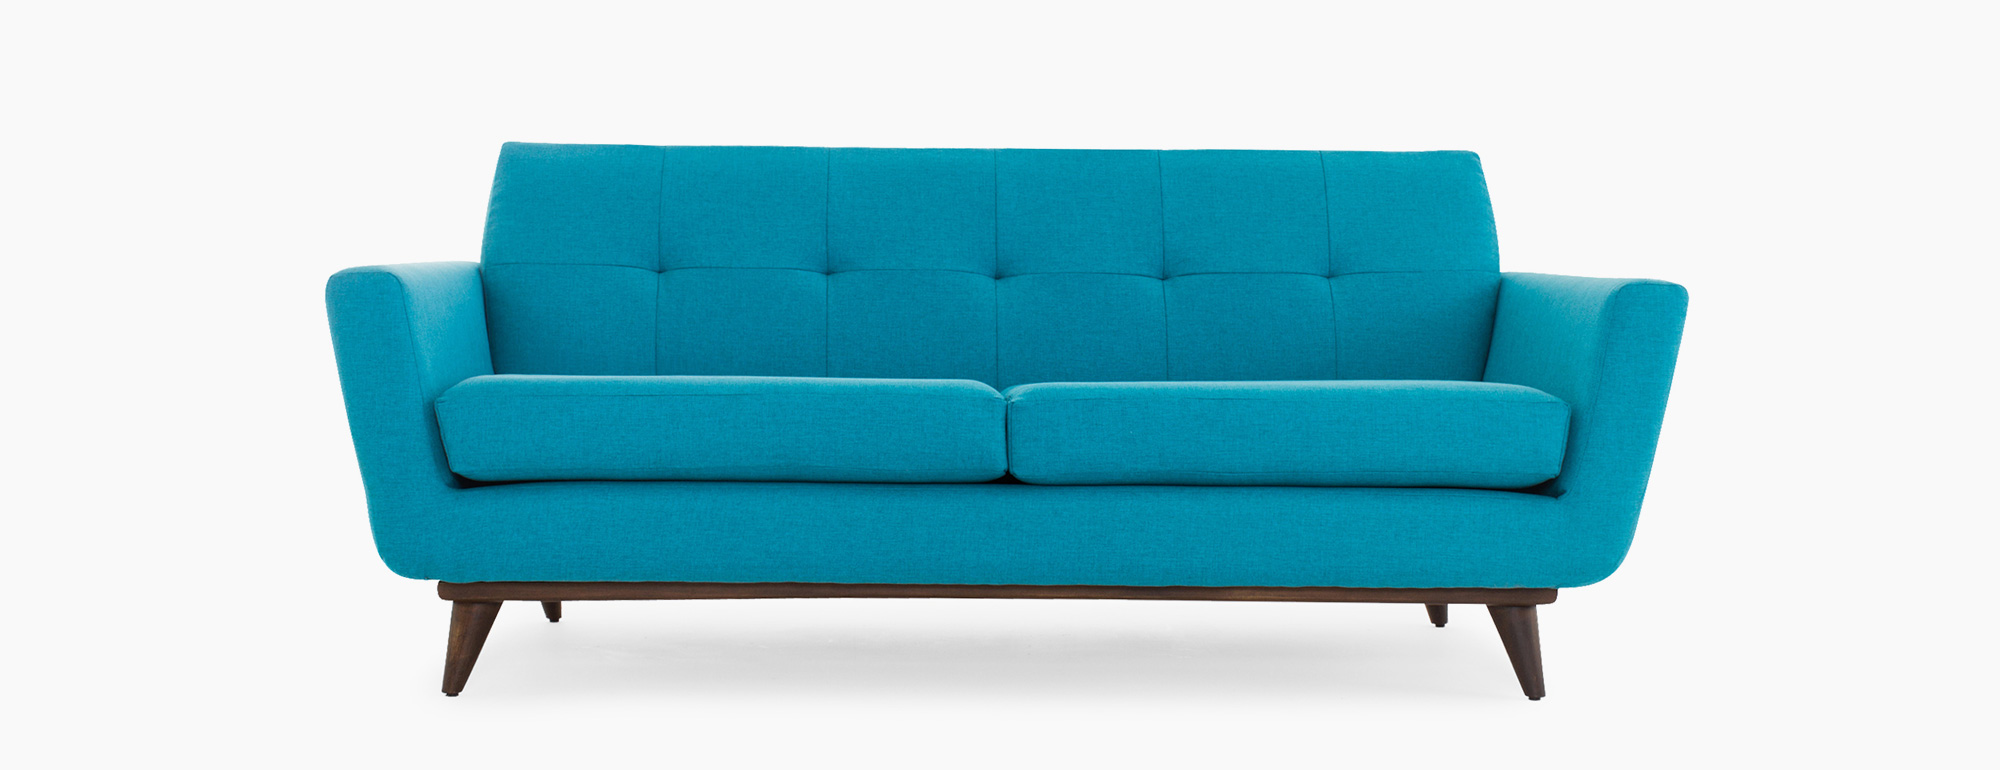 hero-hughes-loveseat-1